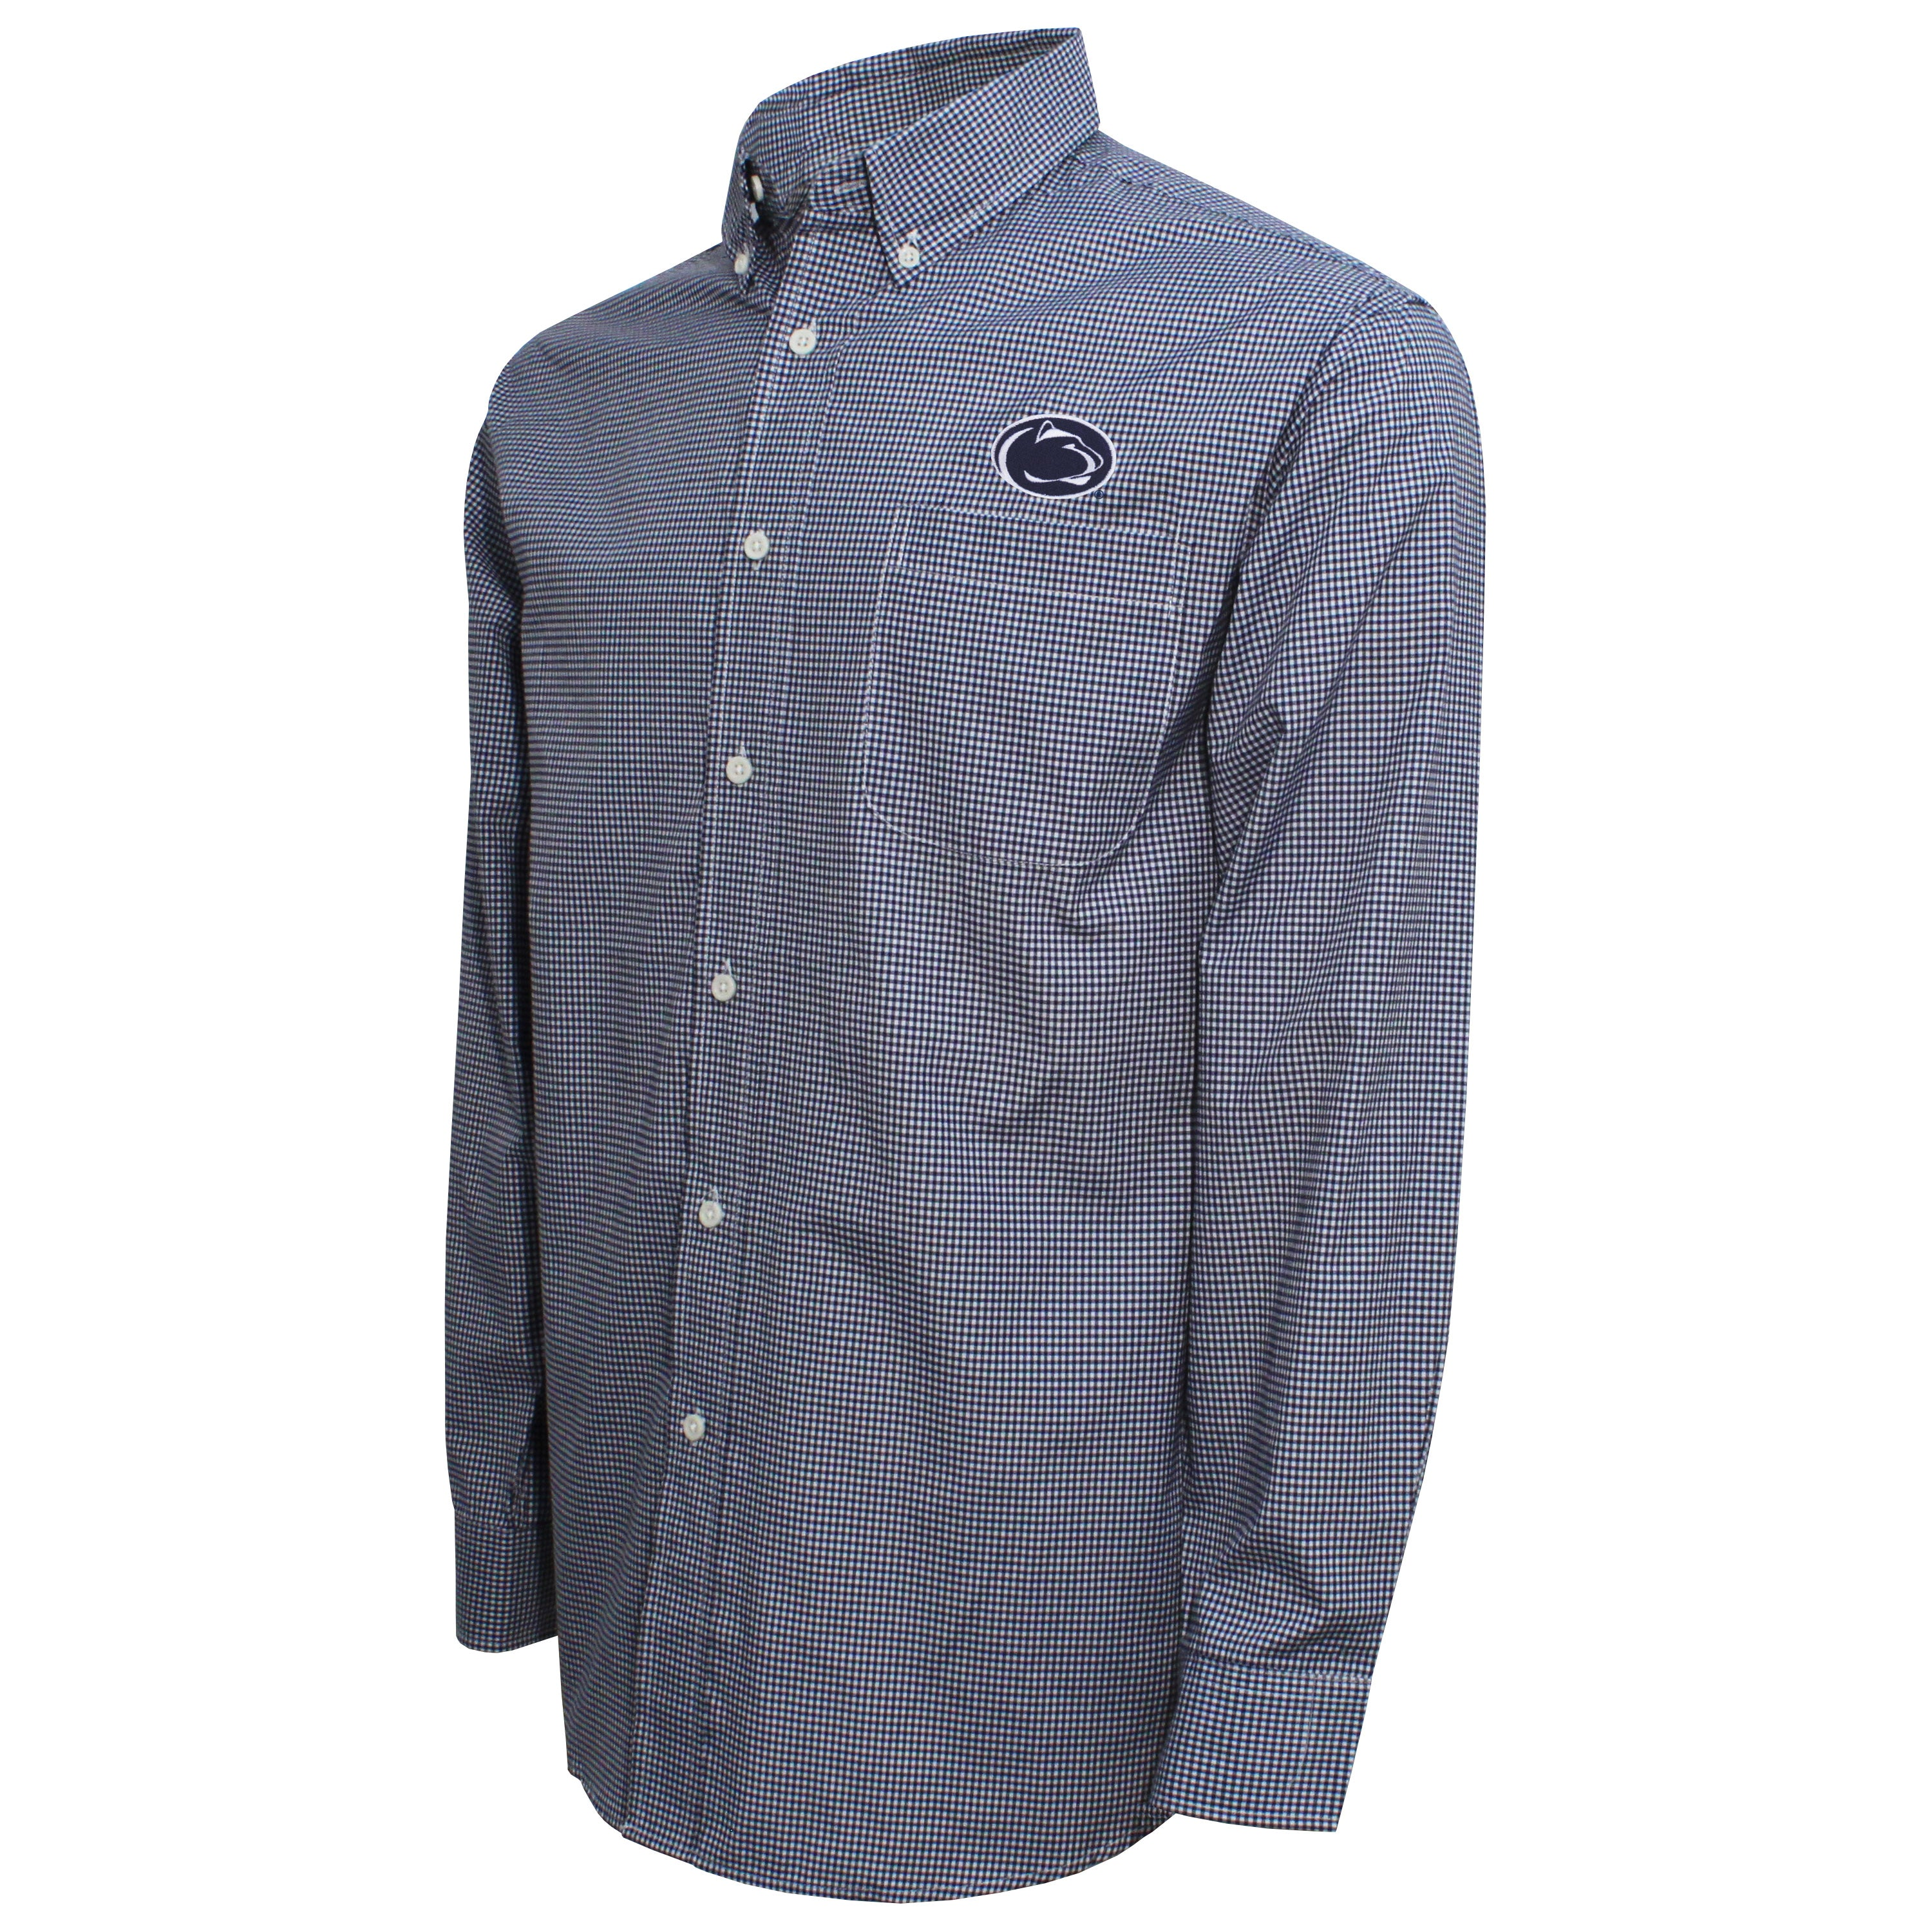 Campus Specialties Penn State Men's Navy Shirt